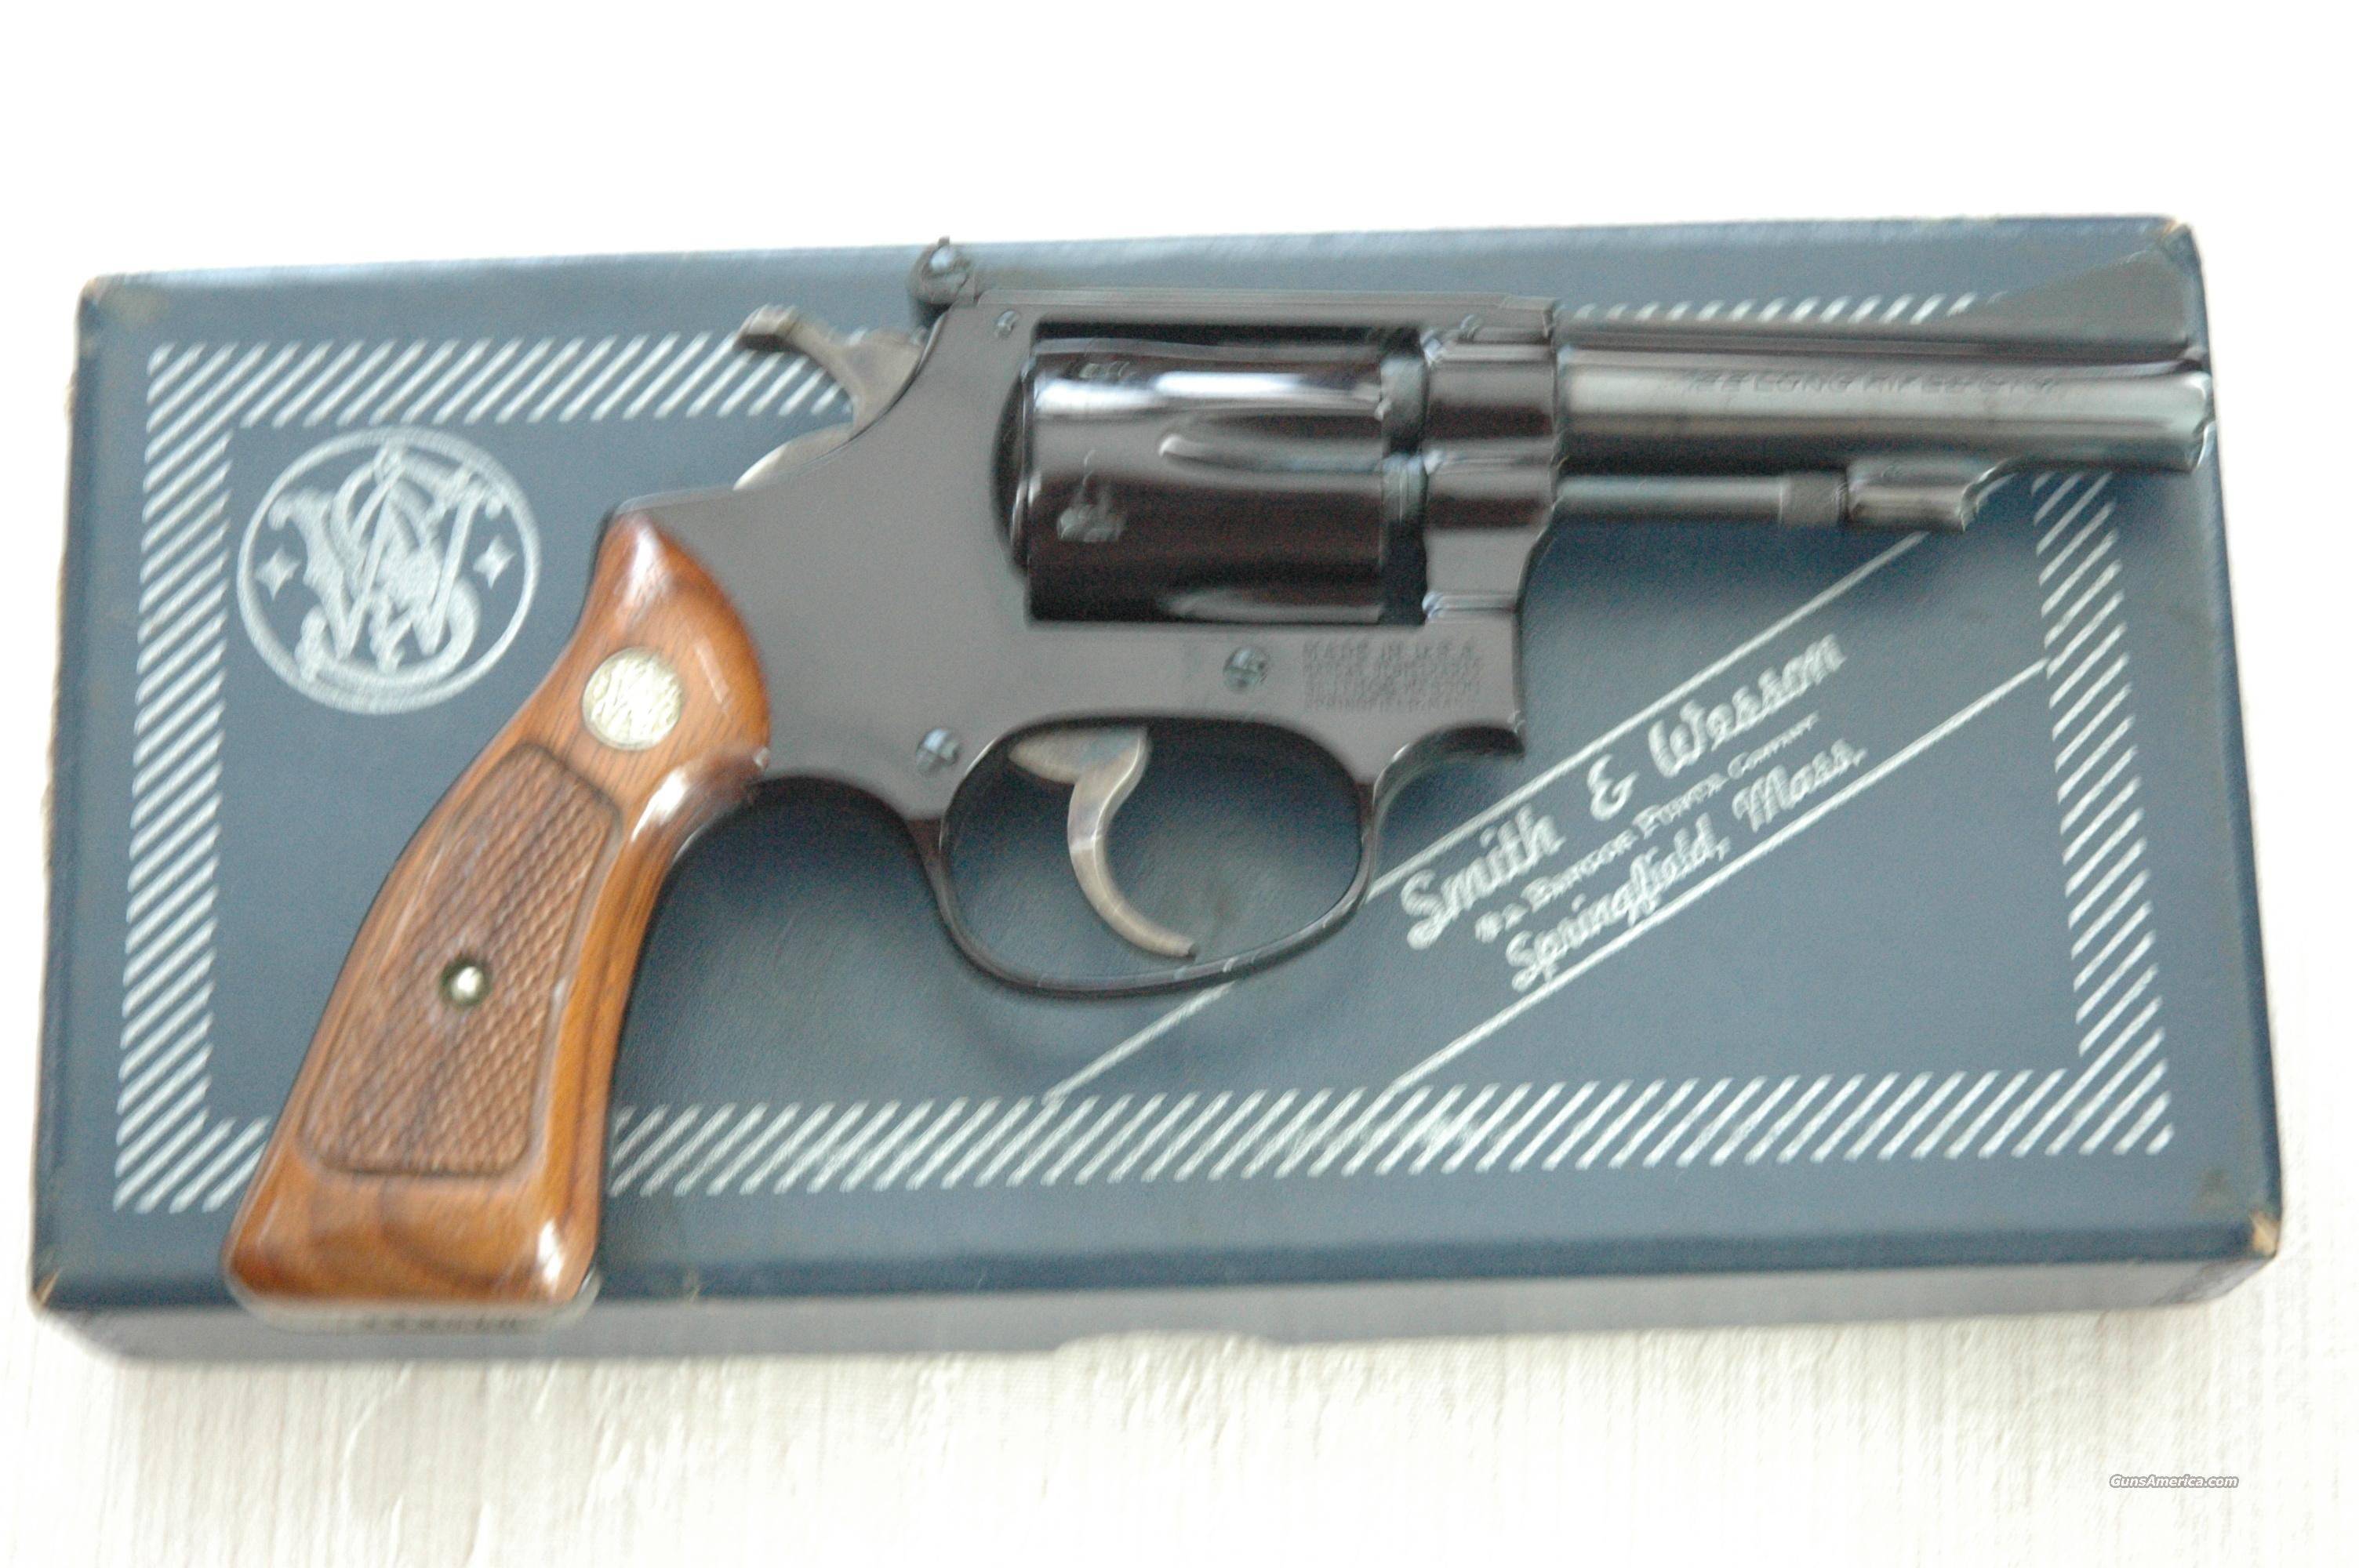 Smith & Wesson 22/32 Airweight Kit Gun Model 43  Guns > Pistols > Smith & Wesson Revolvers > Full Frame Revolver